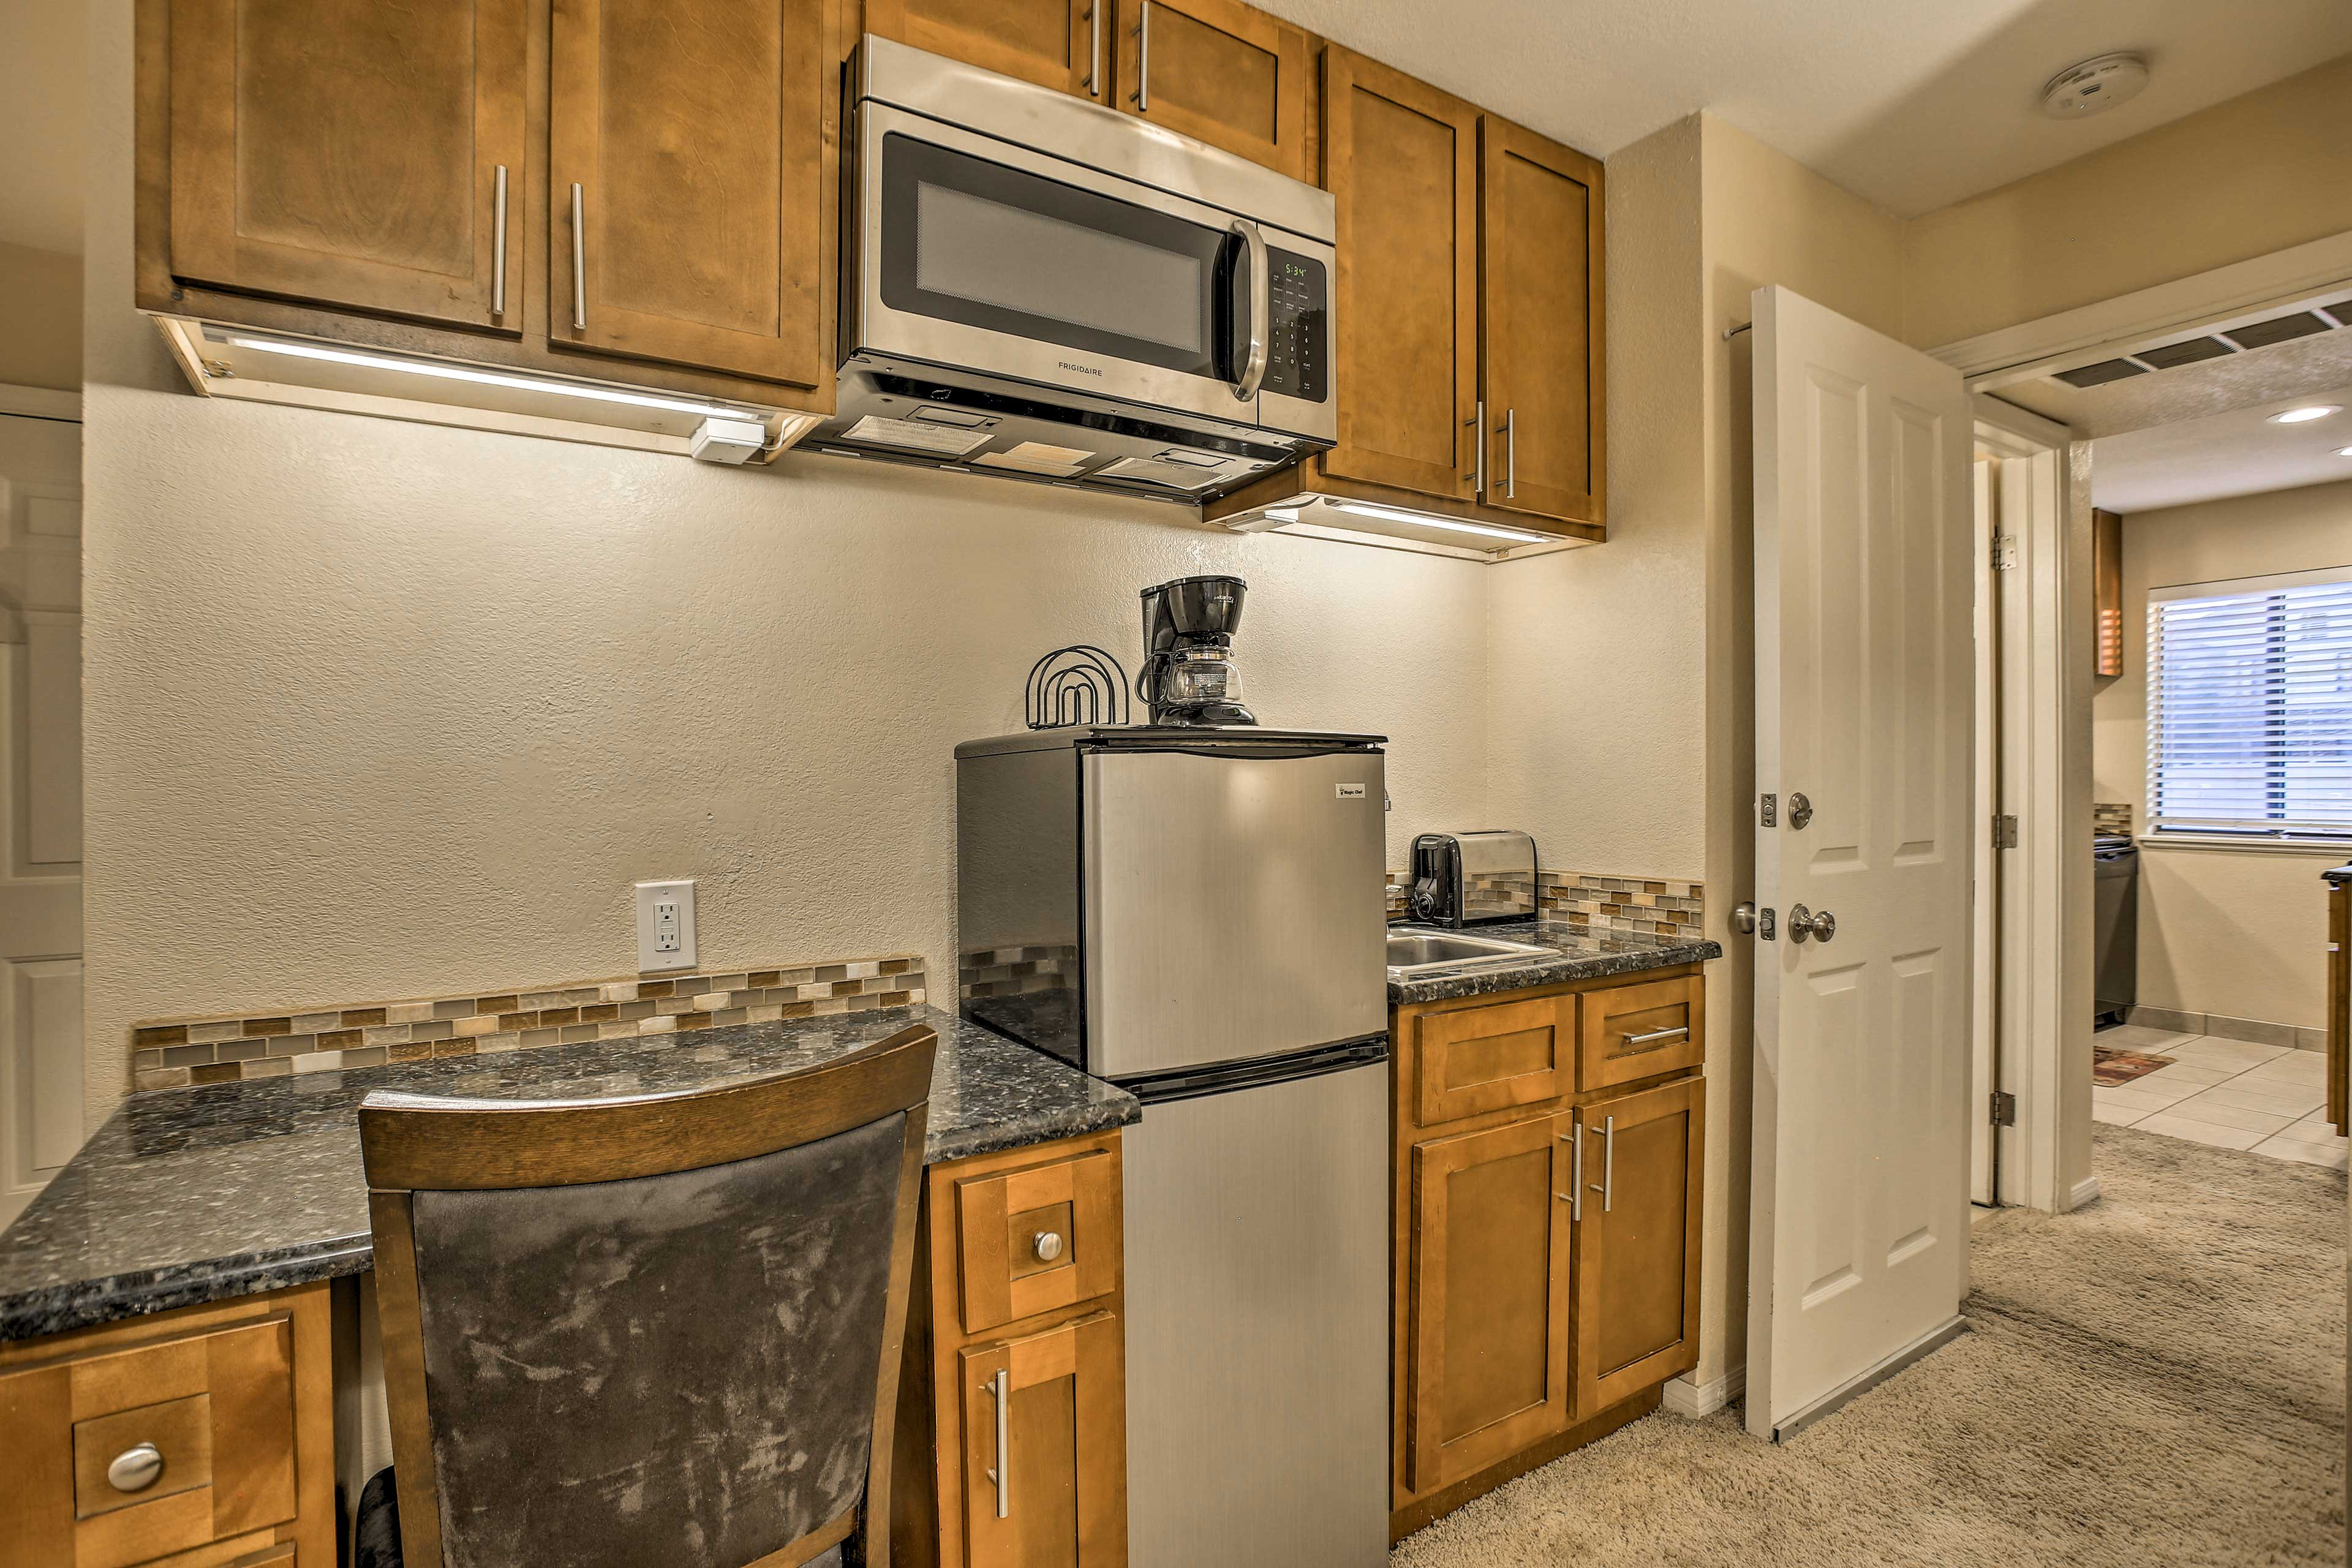 Utilize the kitchenette for quick afternoon snacks.